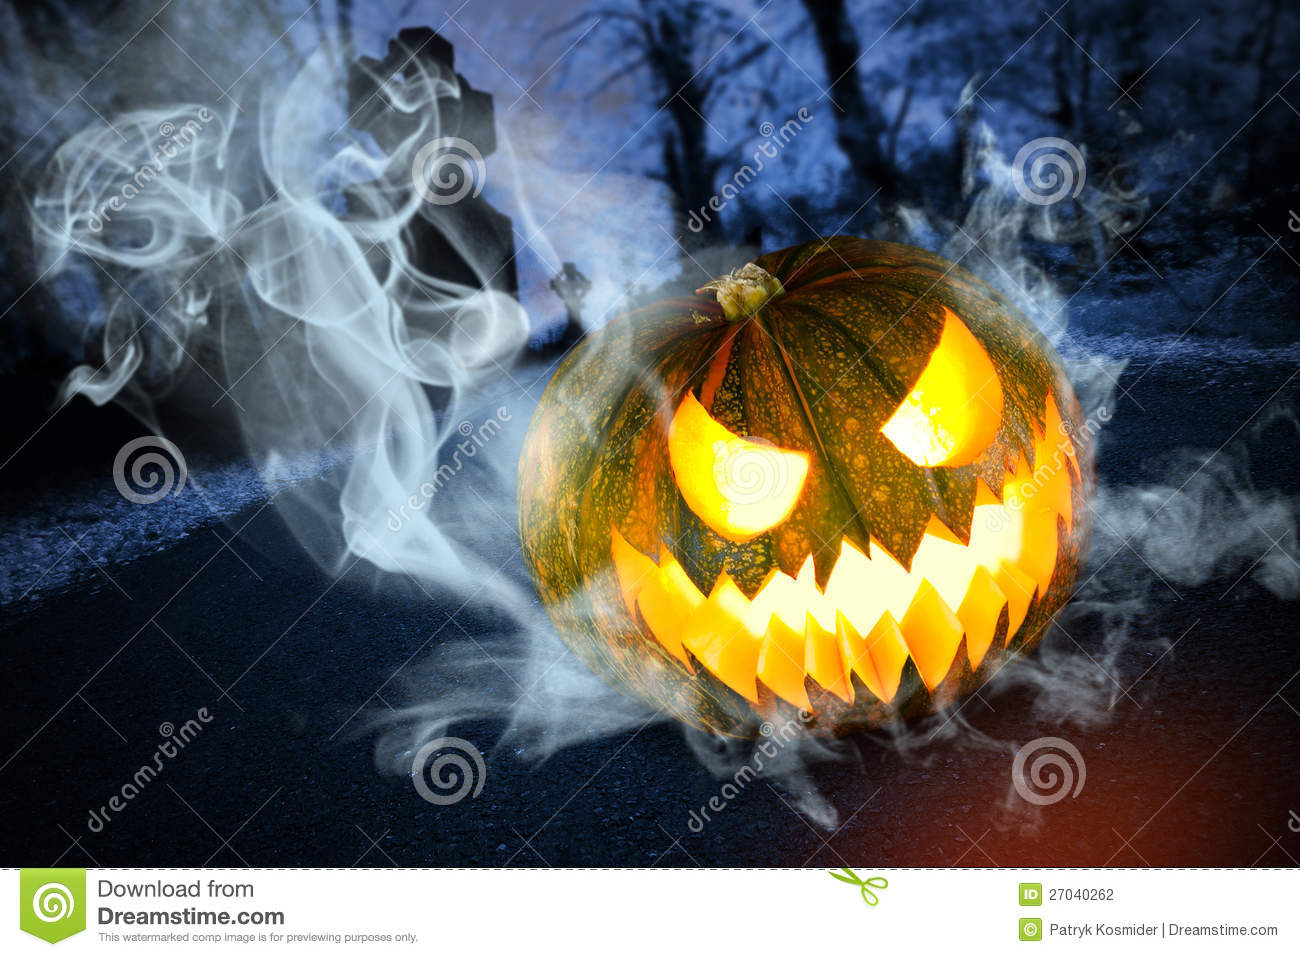 Scary Halloween Pumpkin On Cemetery At Night Stock Photo - Image ...